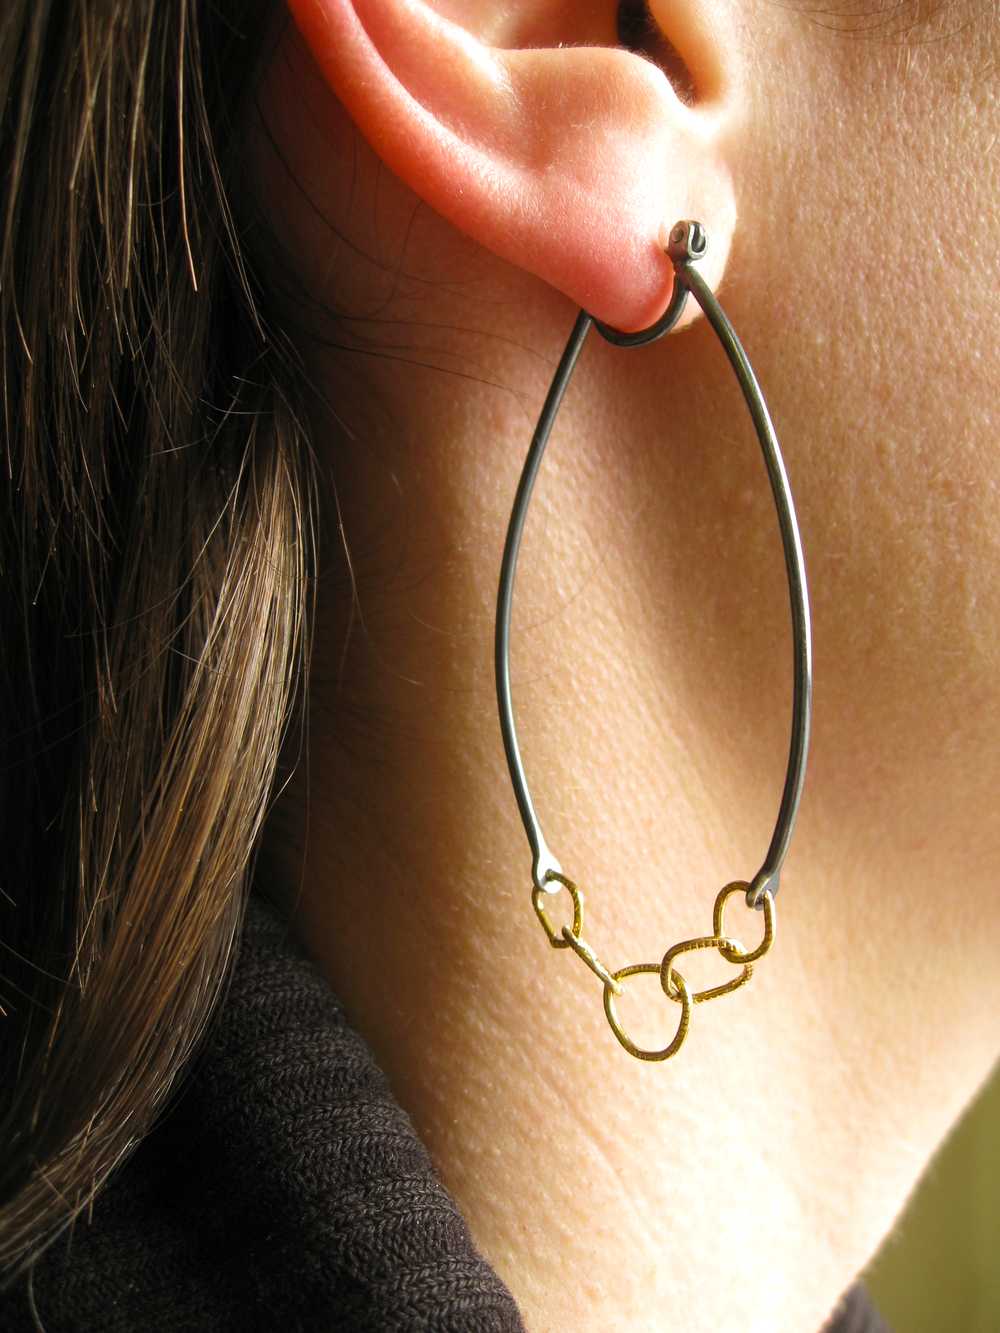 a70a93261 LINKED HOOPS - RECYCLED OXIDIZED STERLING SILVER - RECYCLED 18K YELLOW GOLD  — Sharon Z Jewelry